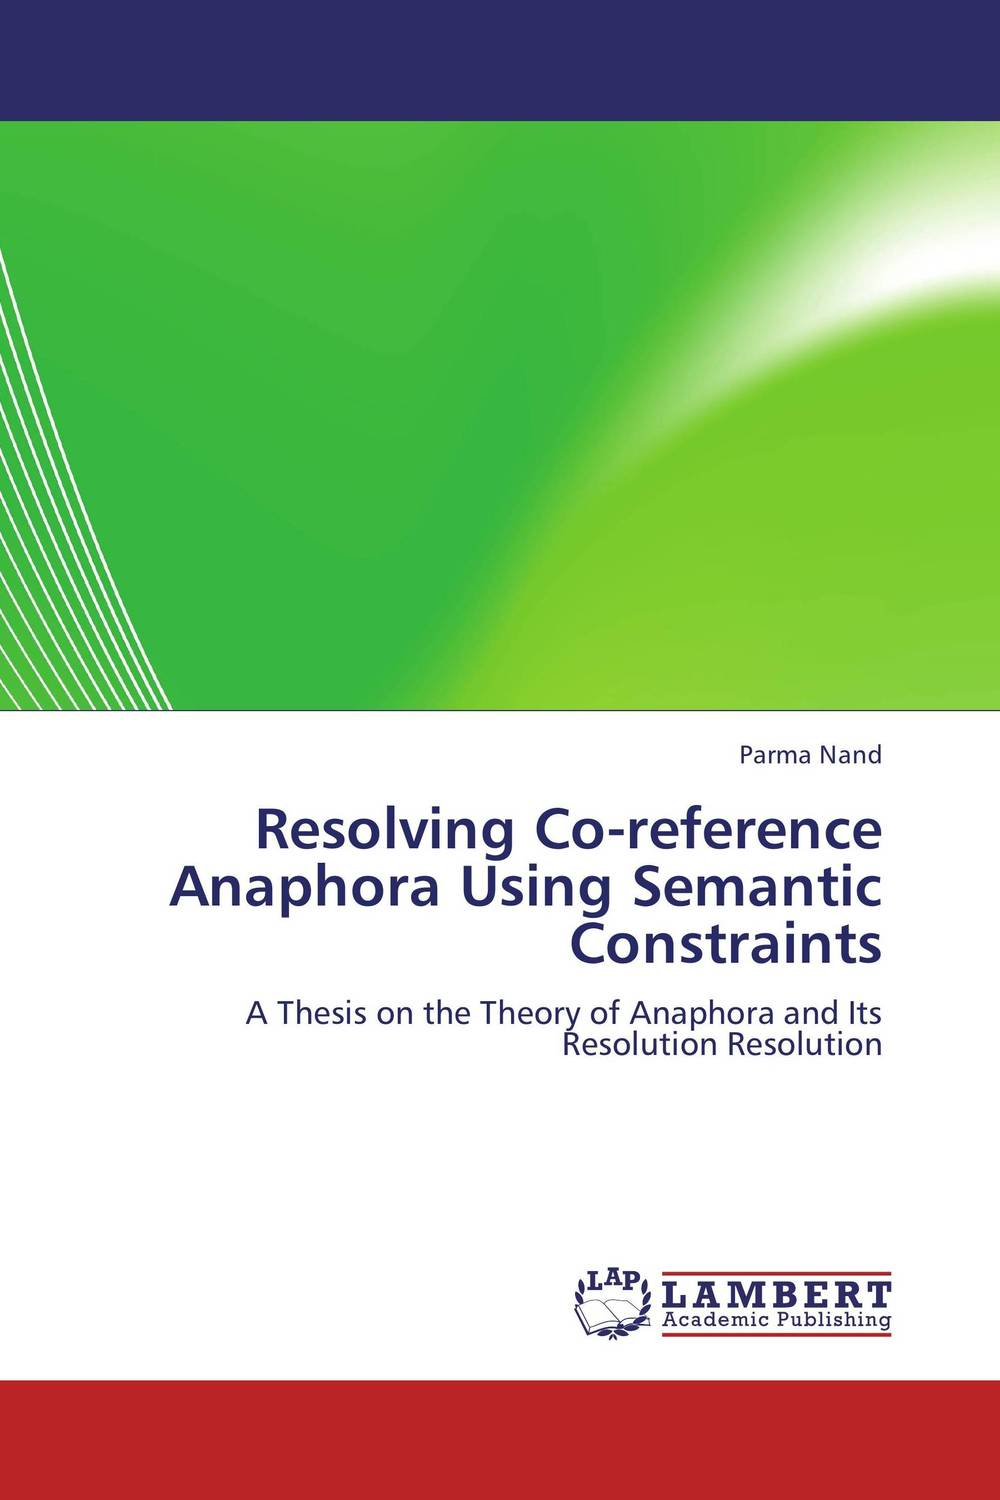 Resolving Co-reference Anaphora Using Semantic Constraints thermo operated water valves can be used in food processing equipments biomass boilers and hydraulic systems